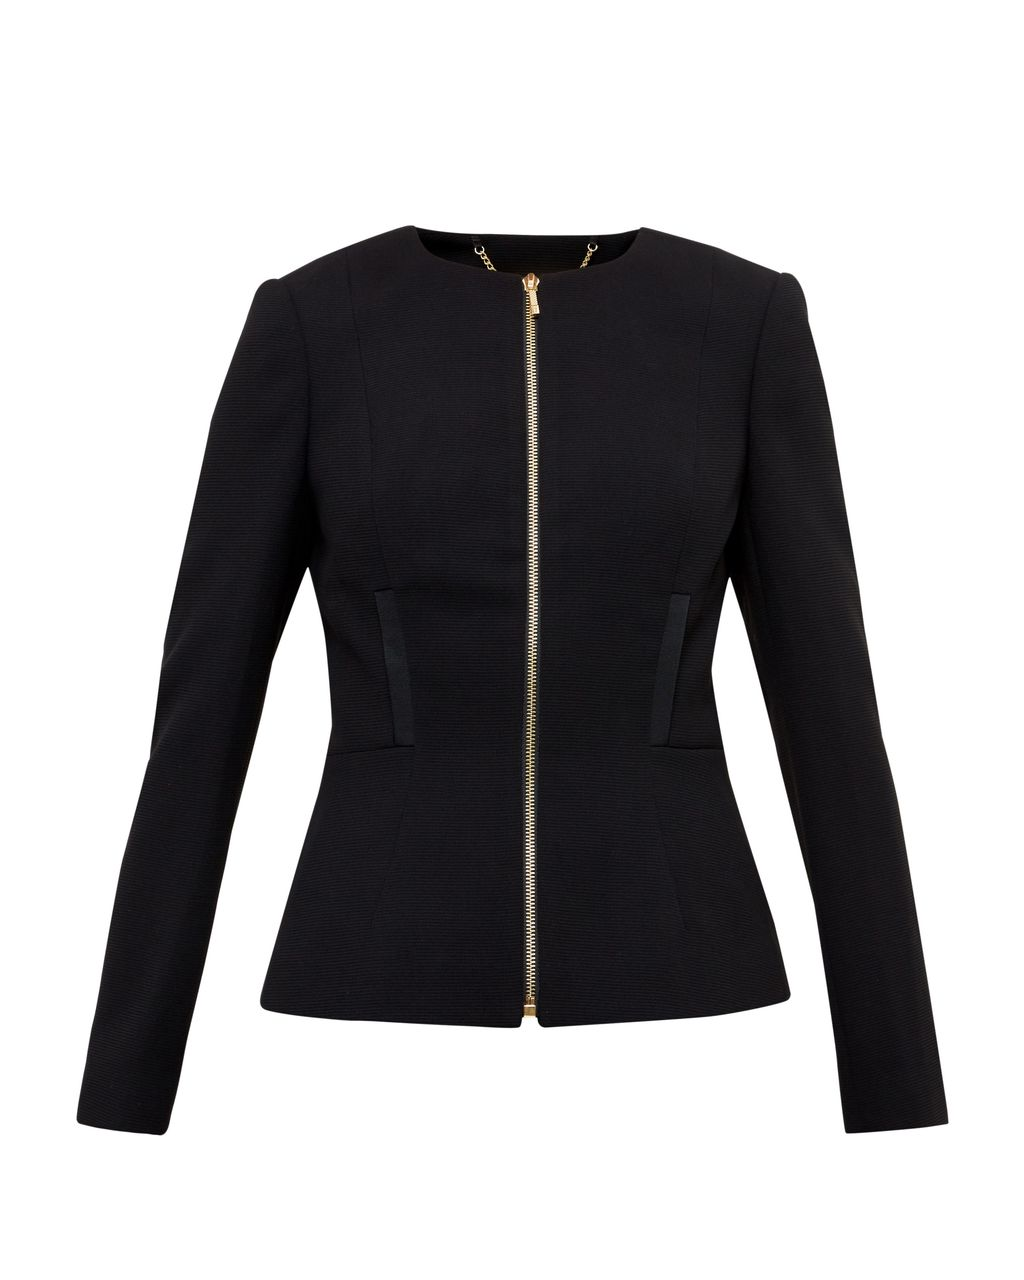 Taalii Textured Fitted Jacket, Black - pattern: plain; style: single breasted blazer; collar: round collar/collarless; predominant colour: black; occasions: work; length: standard; fit: tailored/fitted; fibres: polyester/polyamide - 100%; sleeve length: long sleeve; sleeve style: standard; texture group: crepes; collar break: high; pattern type: fabric; wardrobe: investment; season: a/w 2016